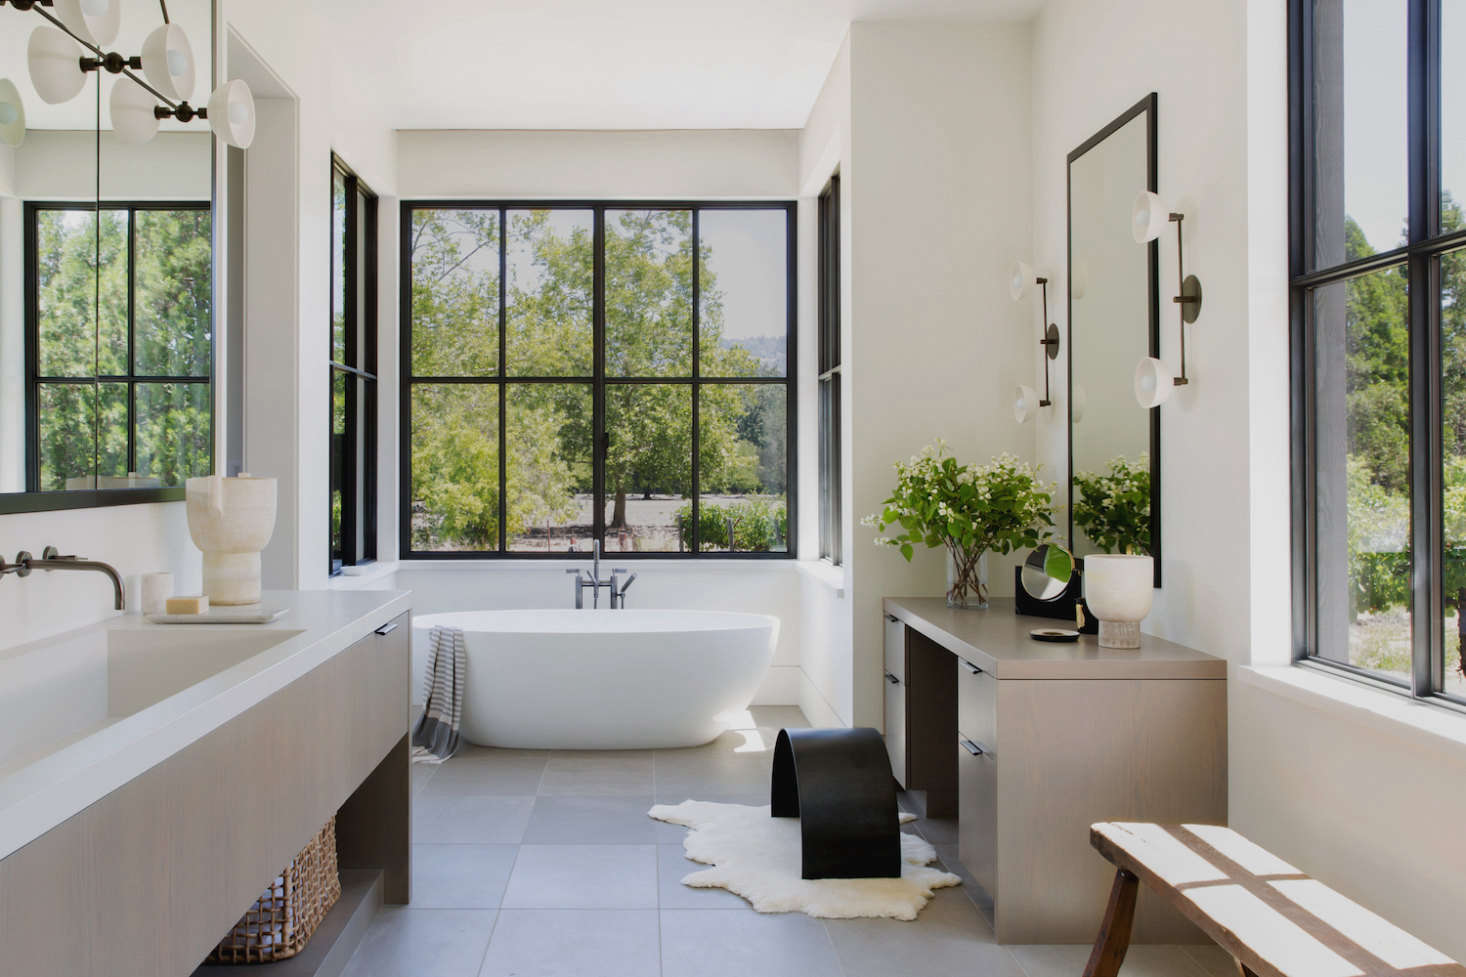 Vote for the Best Professional Bath in Our Design Awards